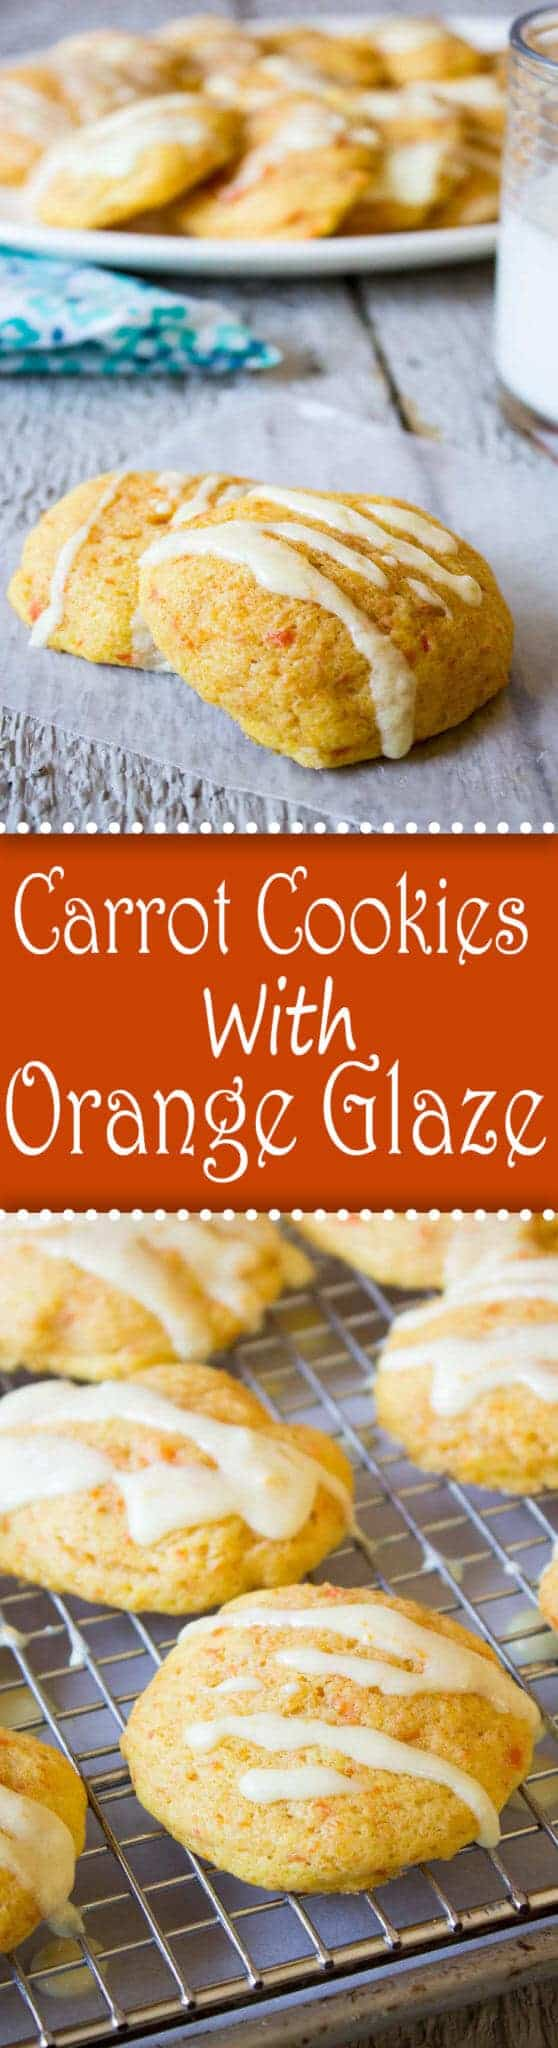 Carrot Cookies topped with a light orange glaze. These cookies are sure to become a family favorite. #cookies #baking #holidays